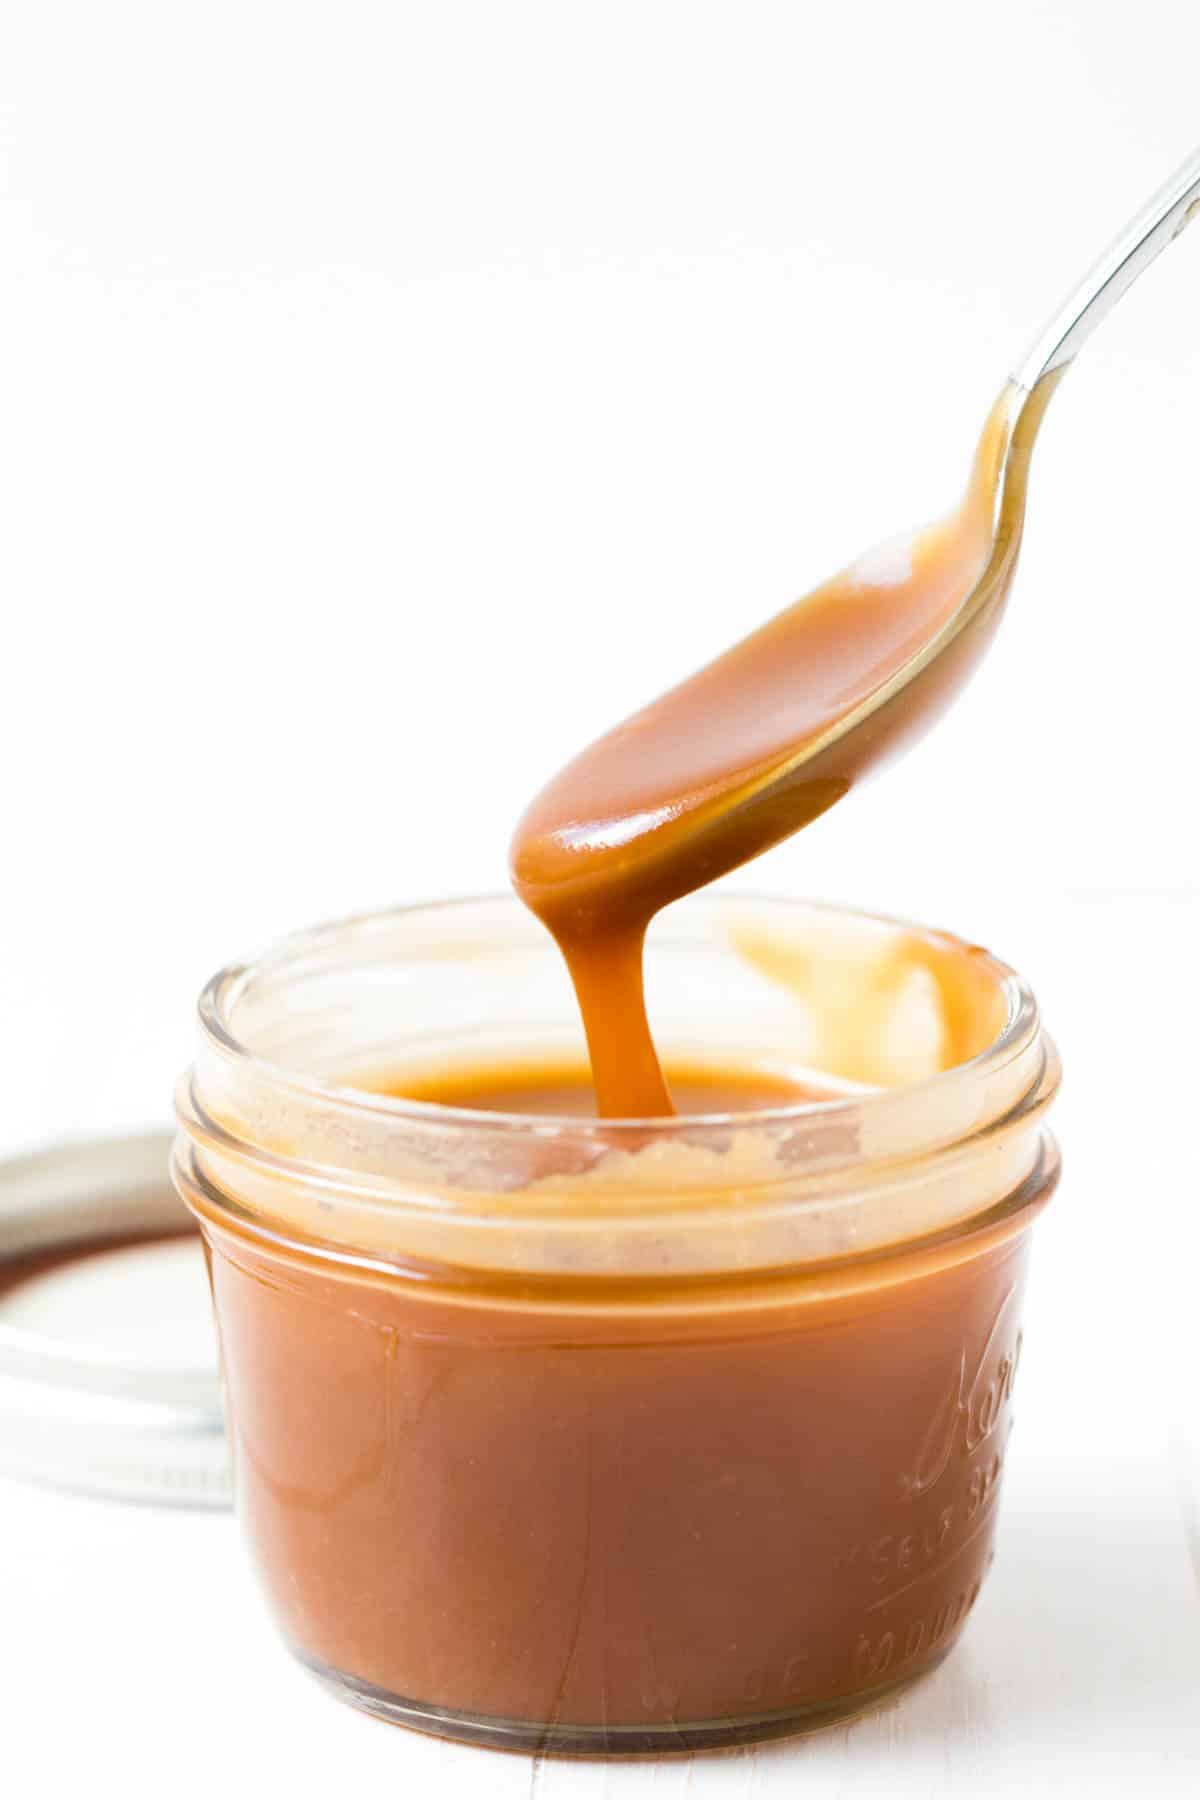 caramel sauce dripping off a spoon into a glass of caramel